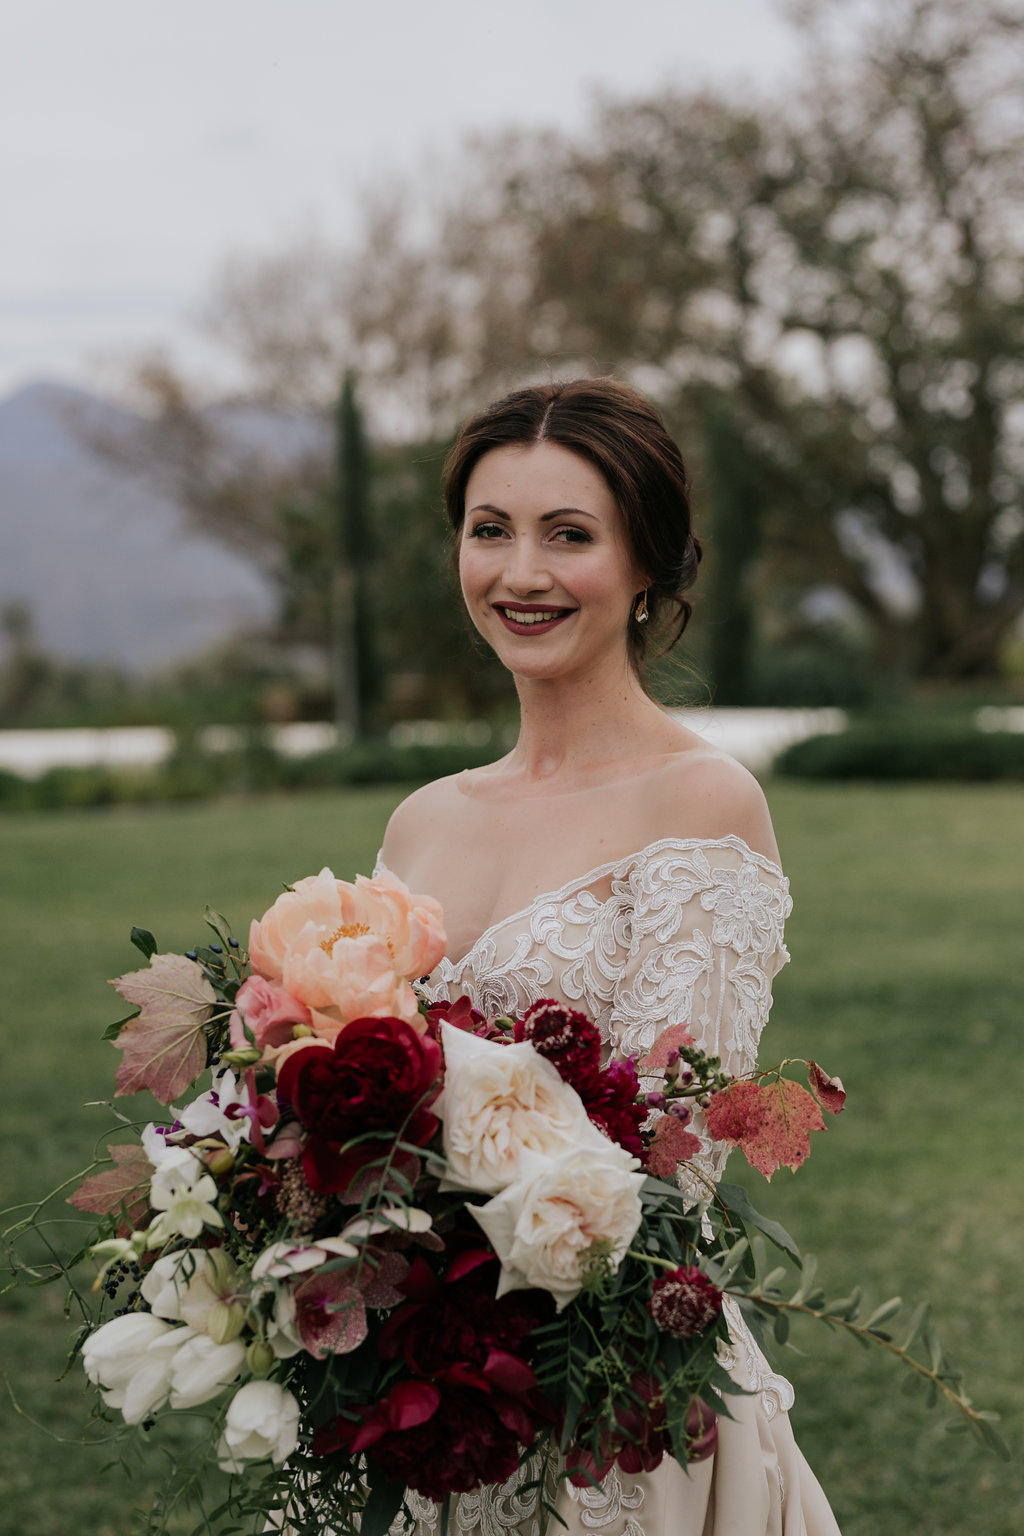 Wildeflower flowers wedding events cape town-18